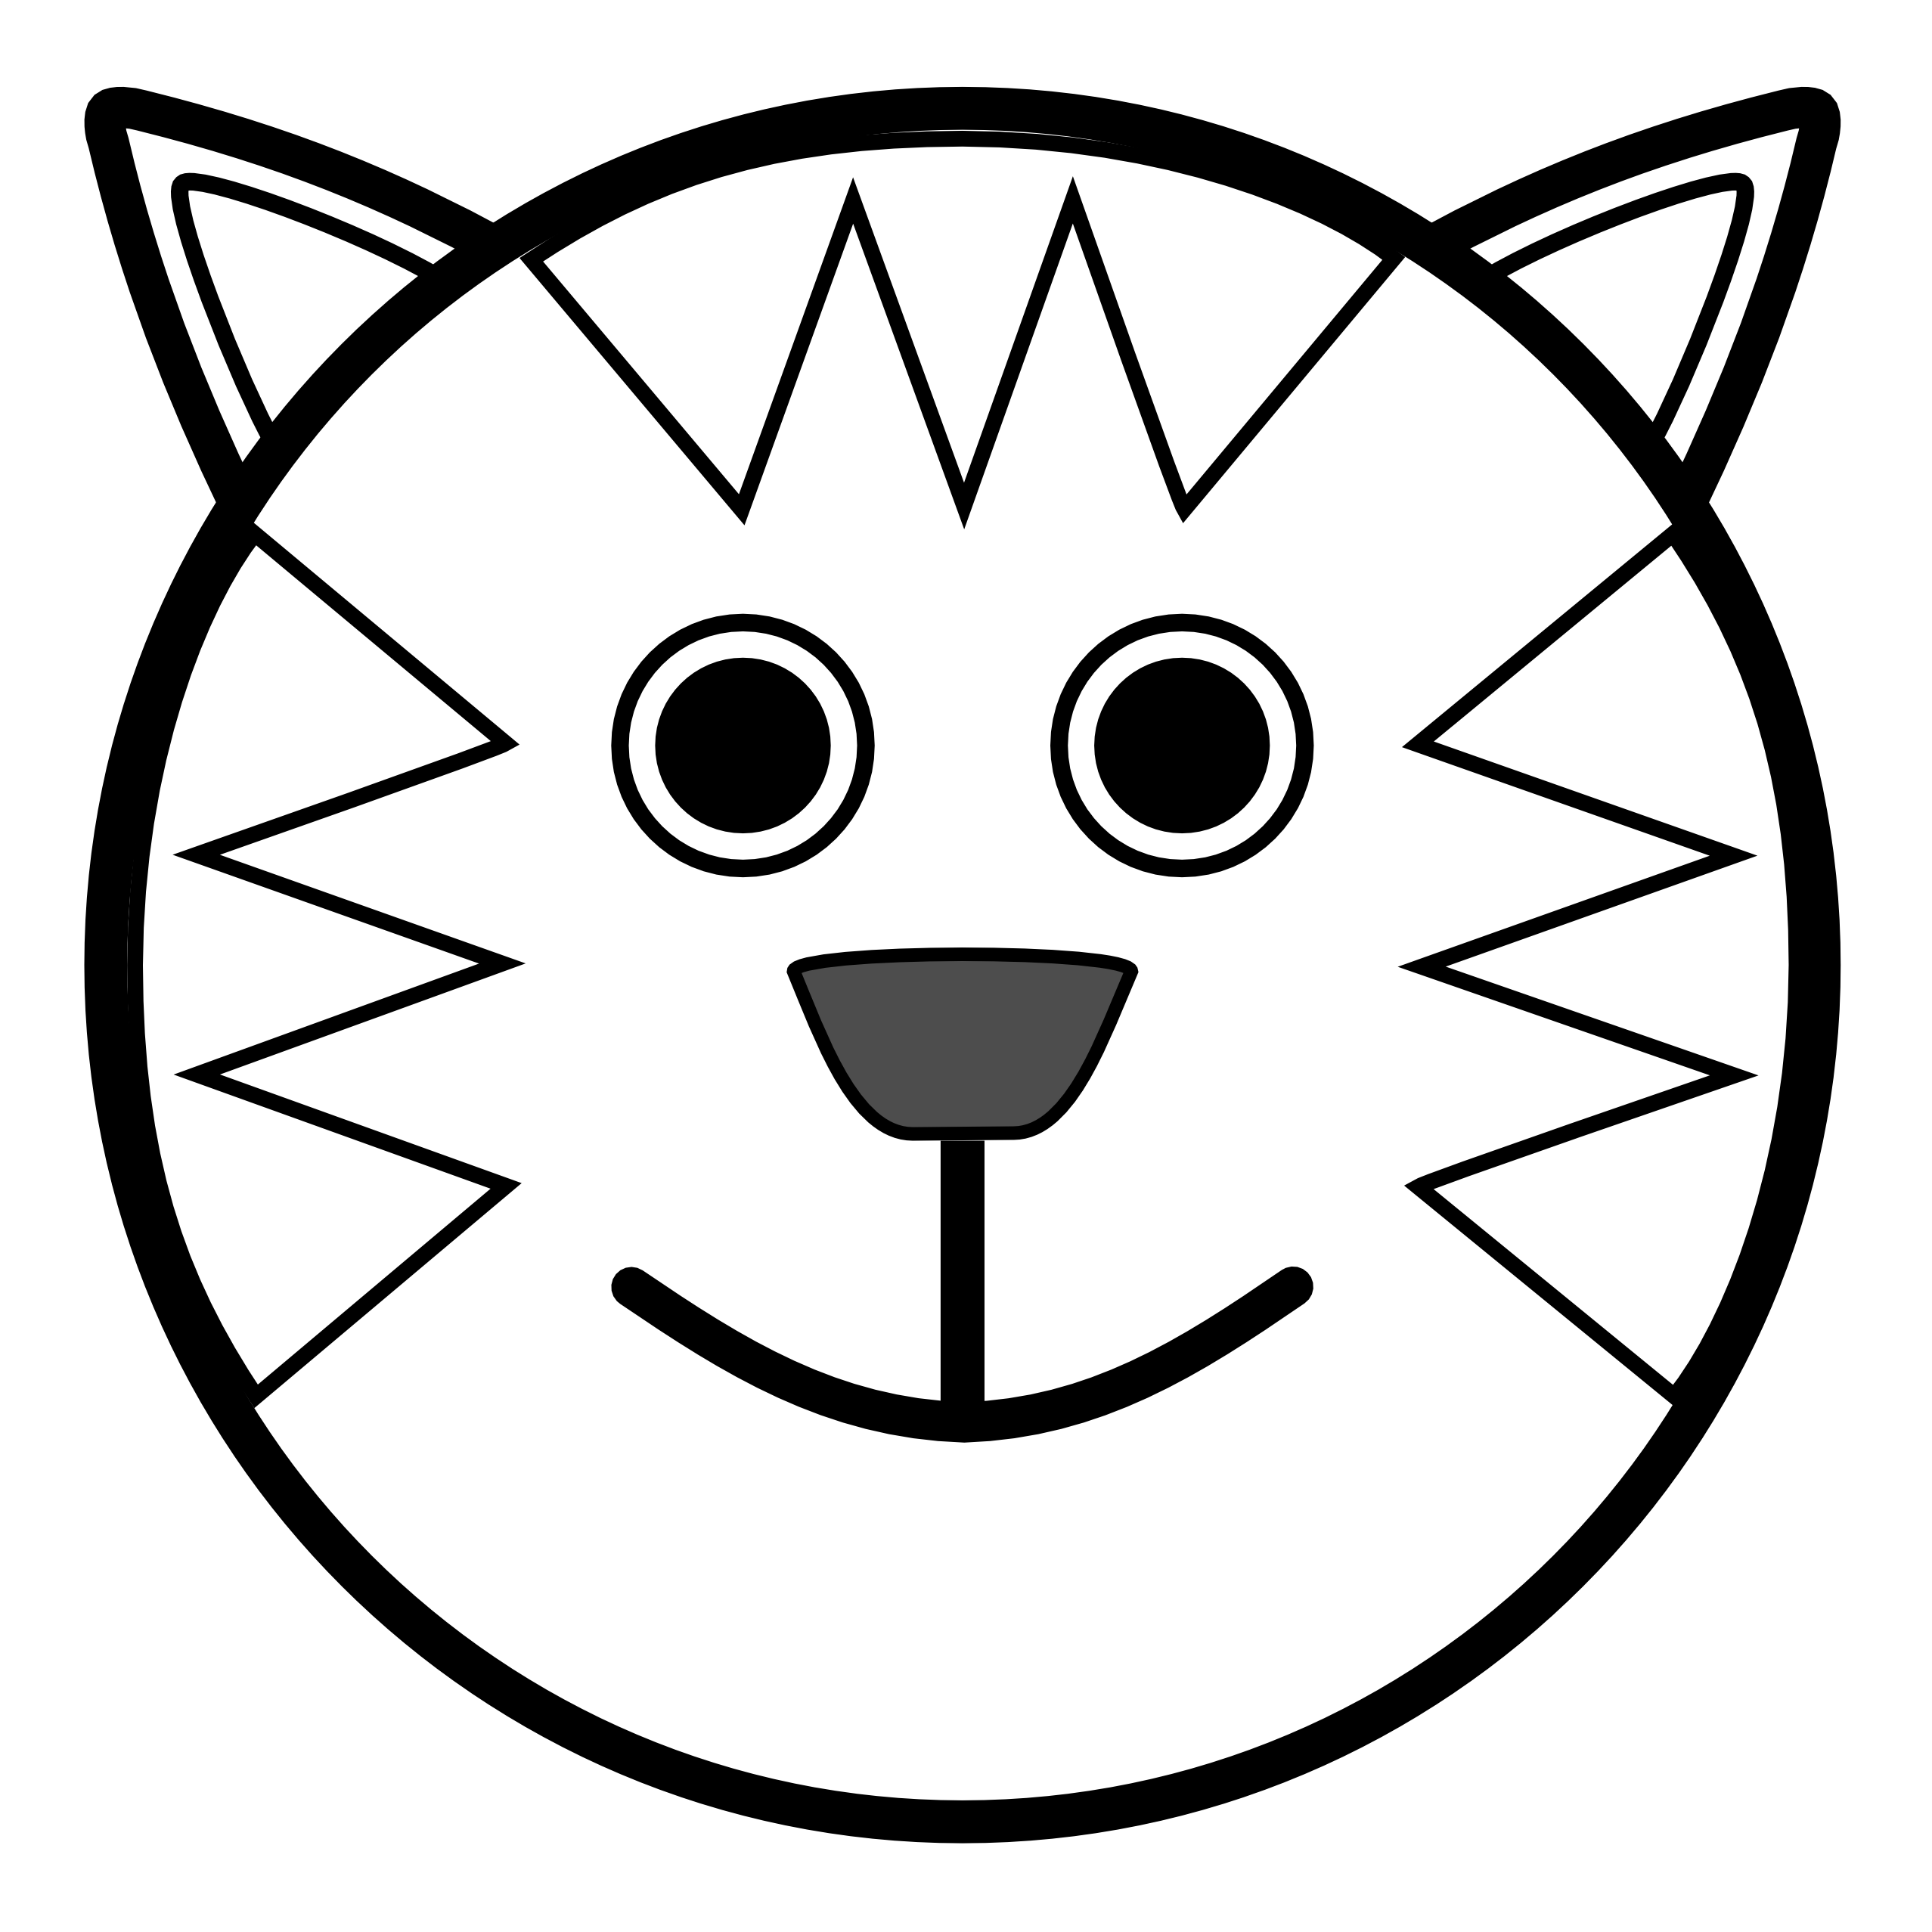 6602 Mask free clipart.